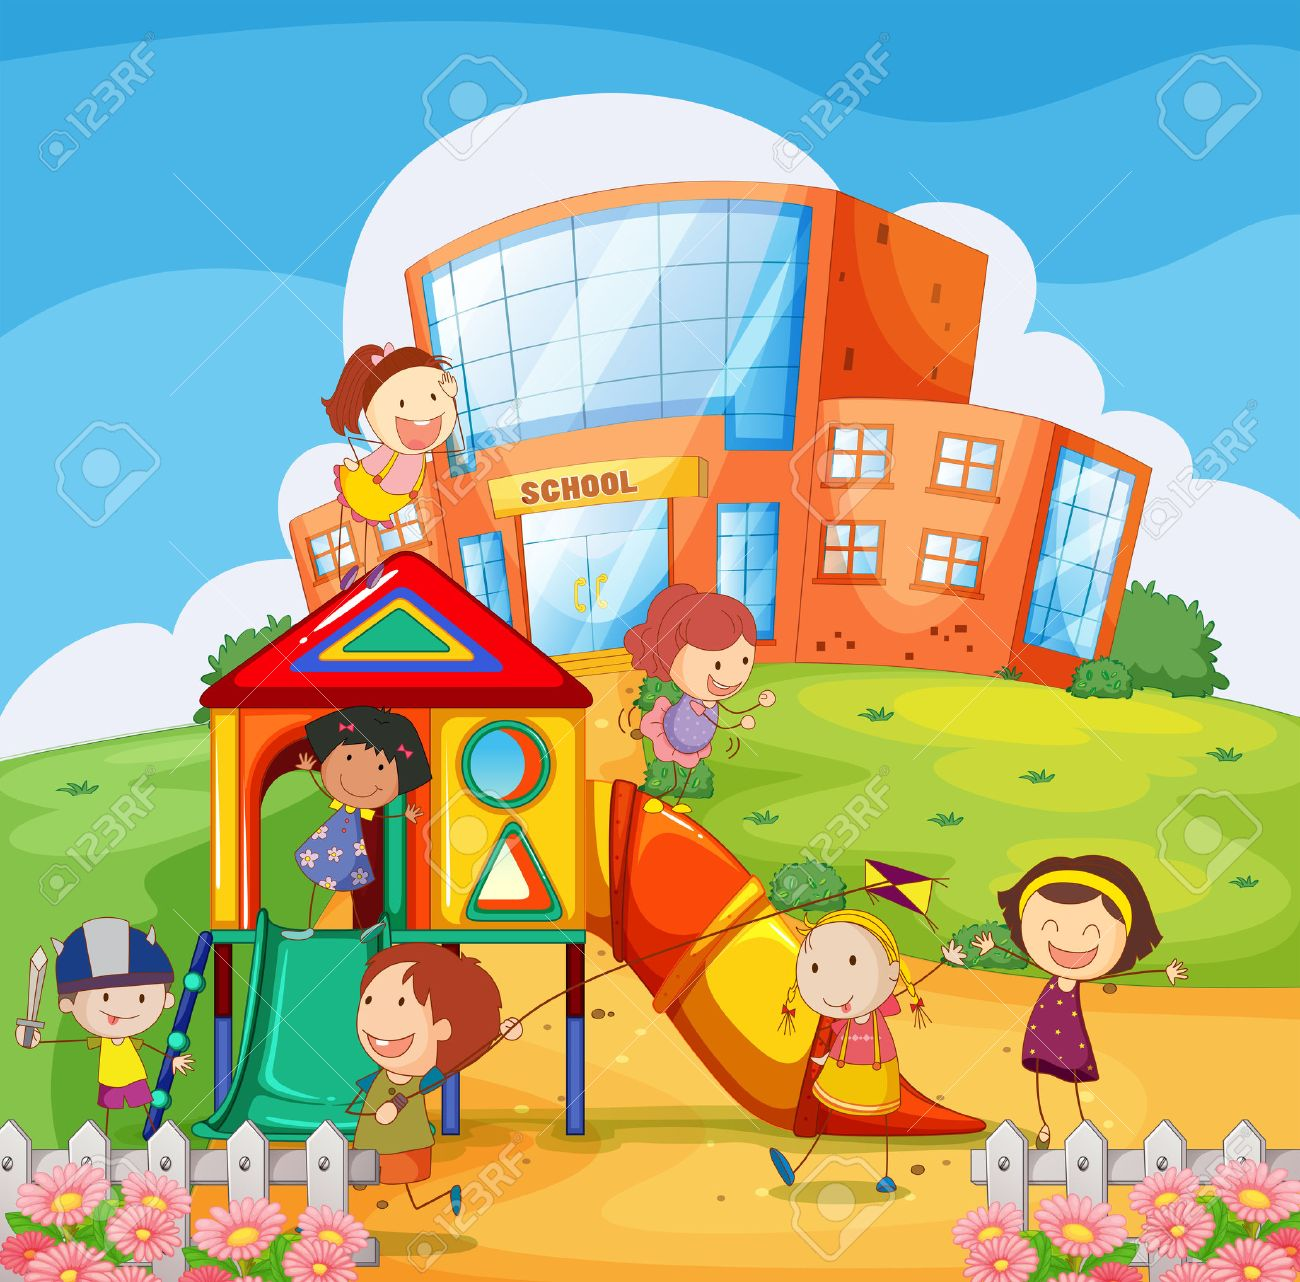 School playground clipart 9 » Clipart Station.